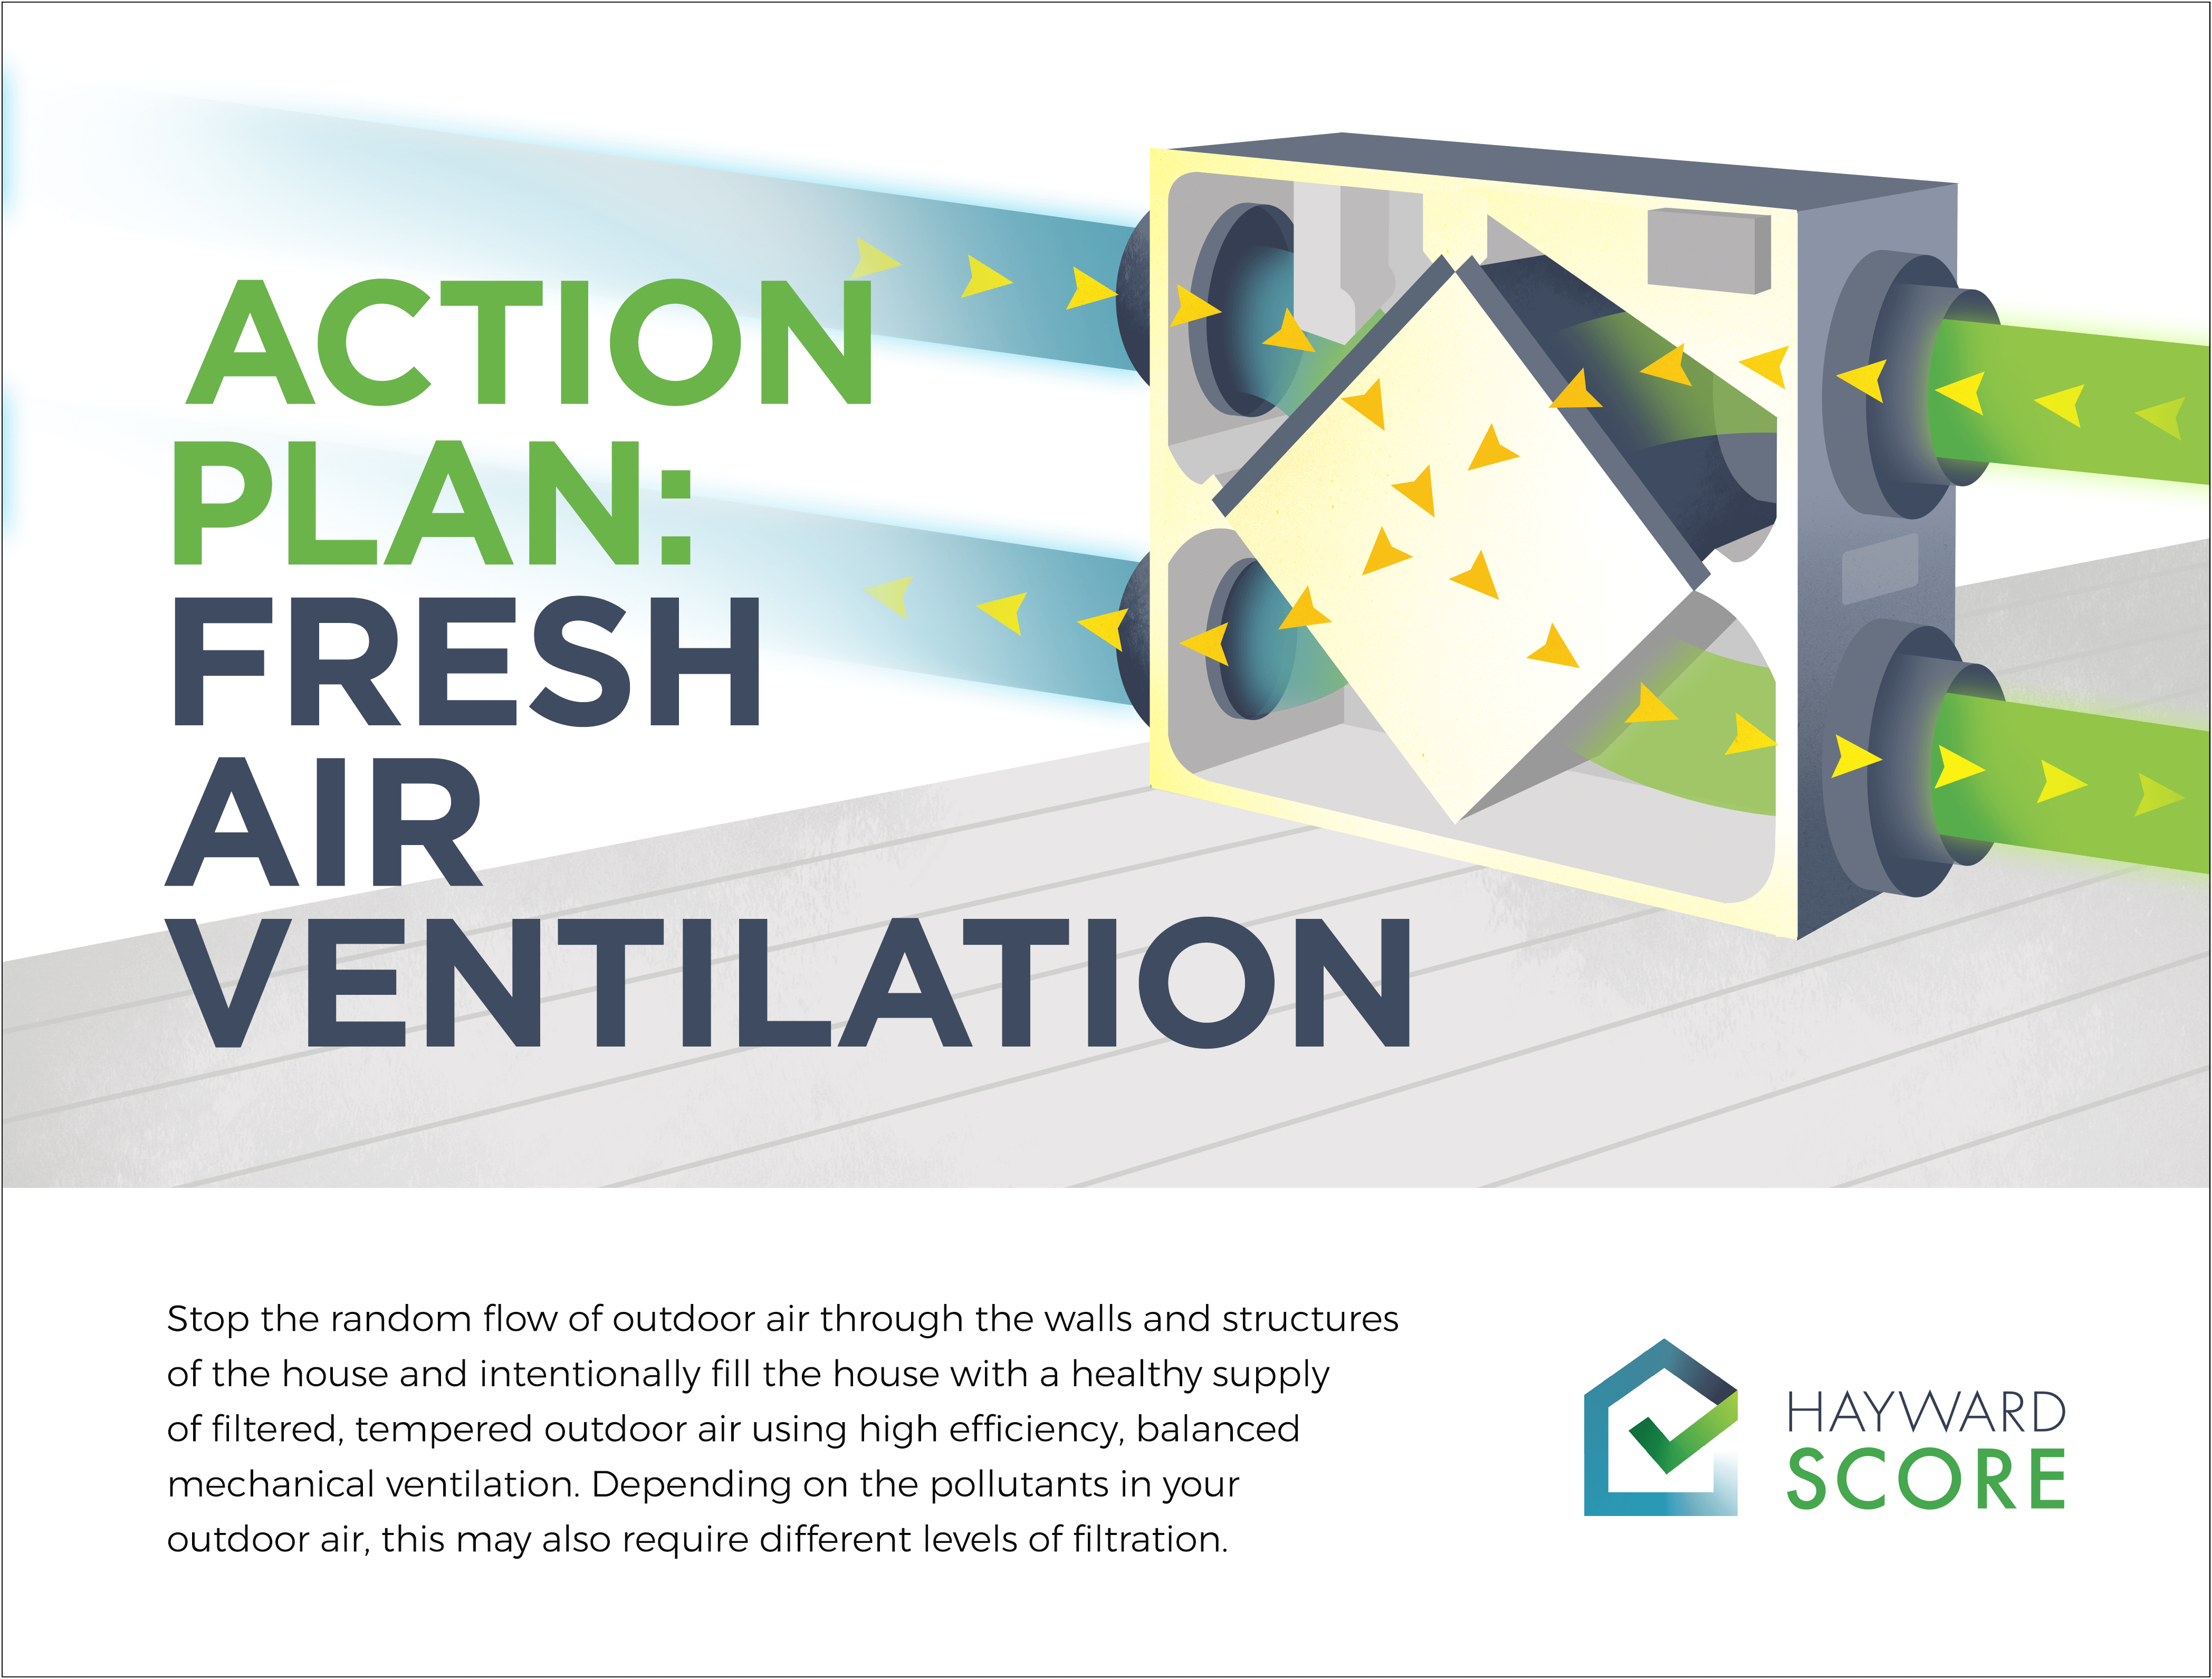 Action Plan: Fresh Air Ventilation